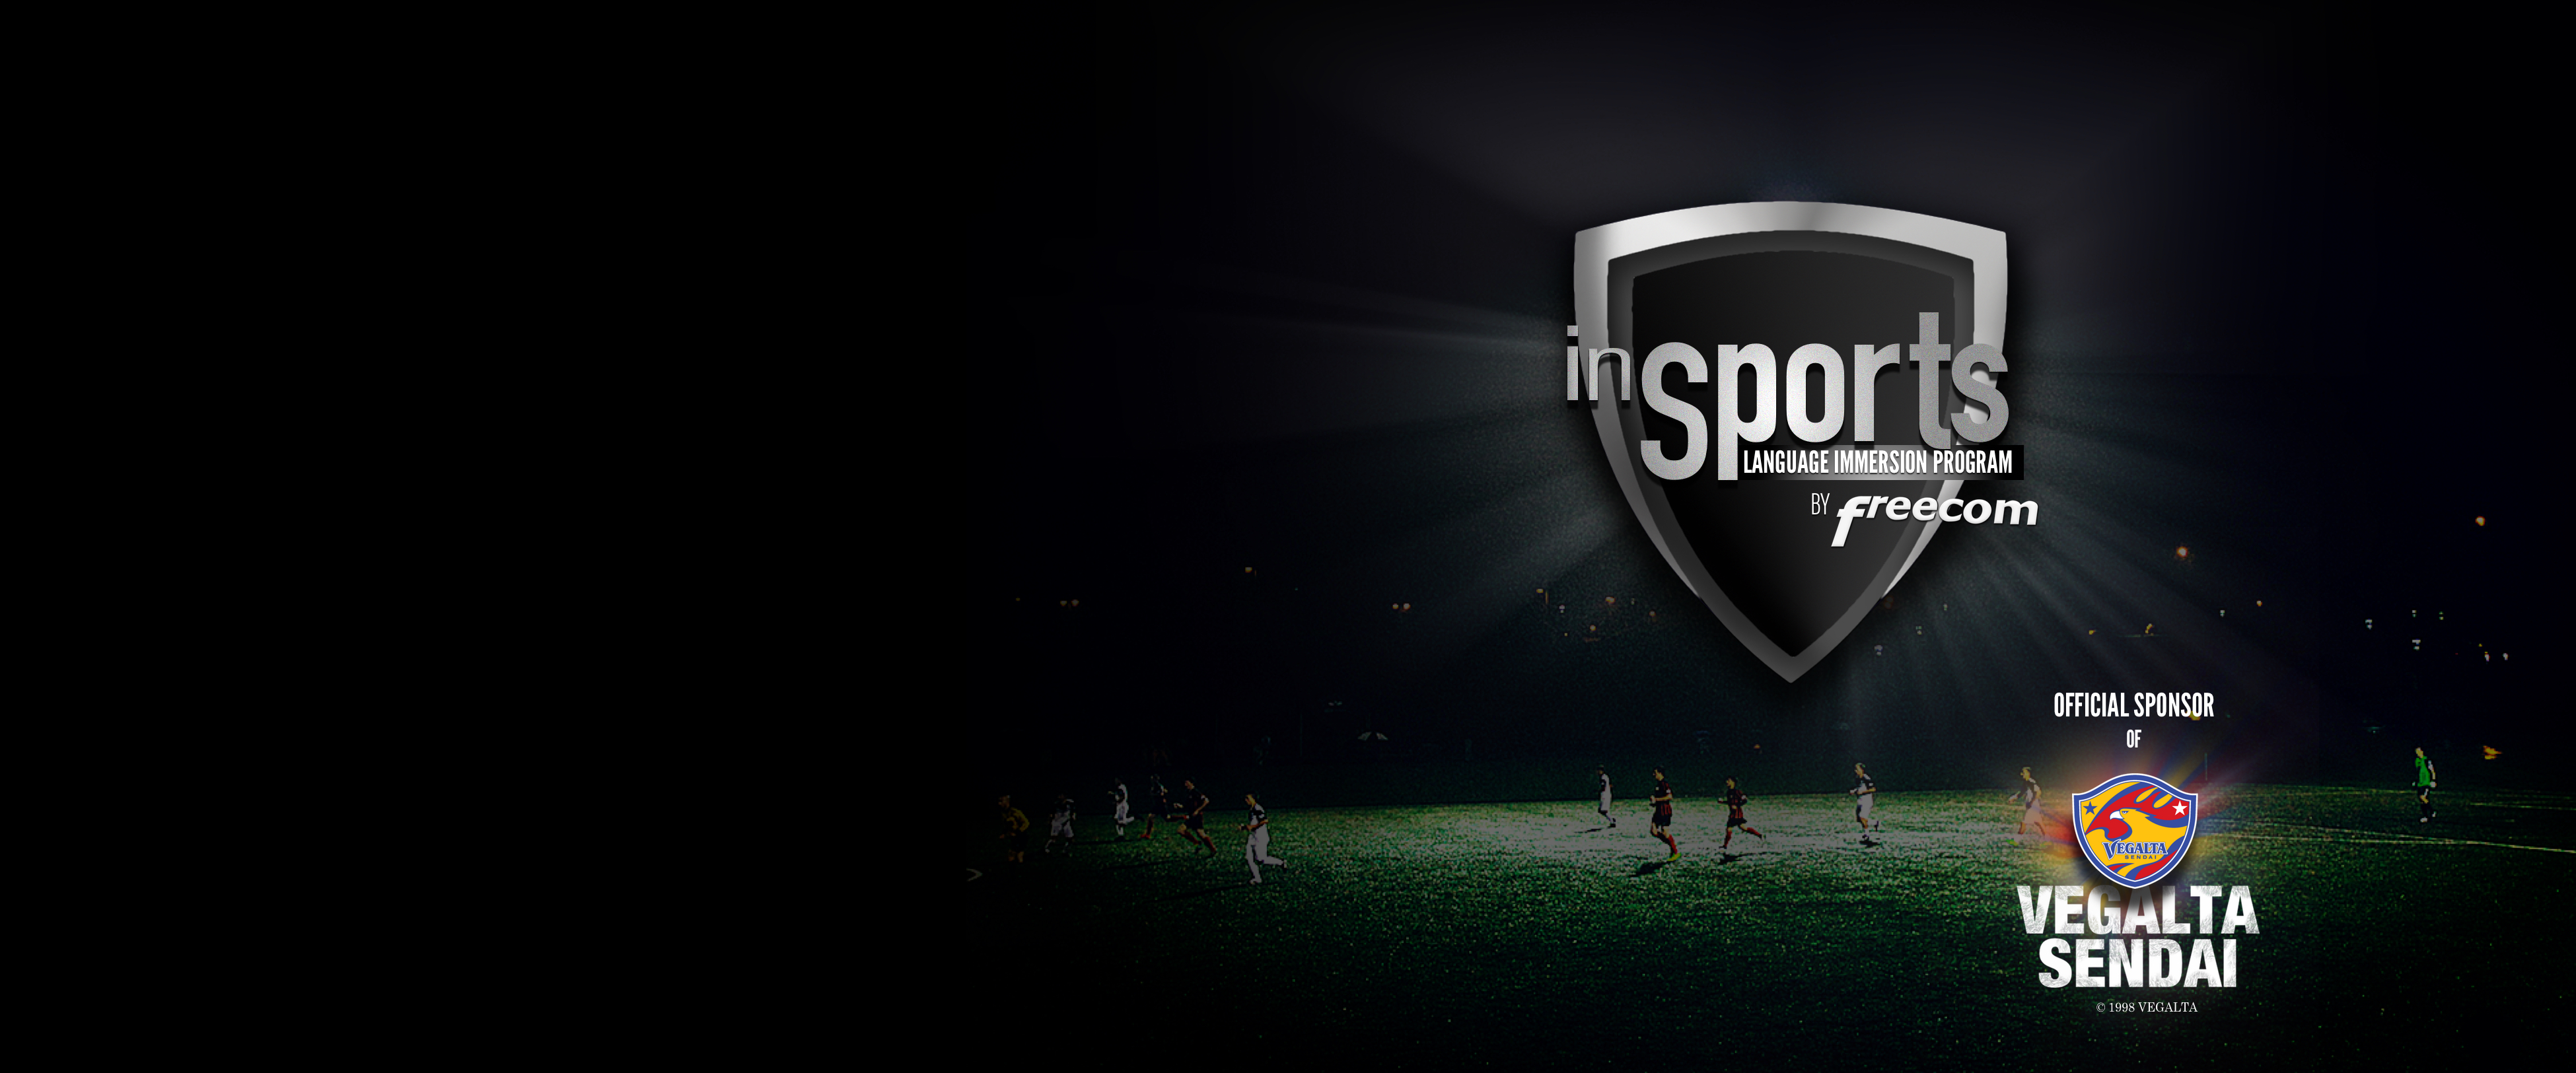 inSports by Freecom